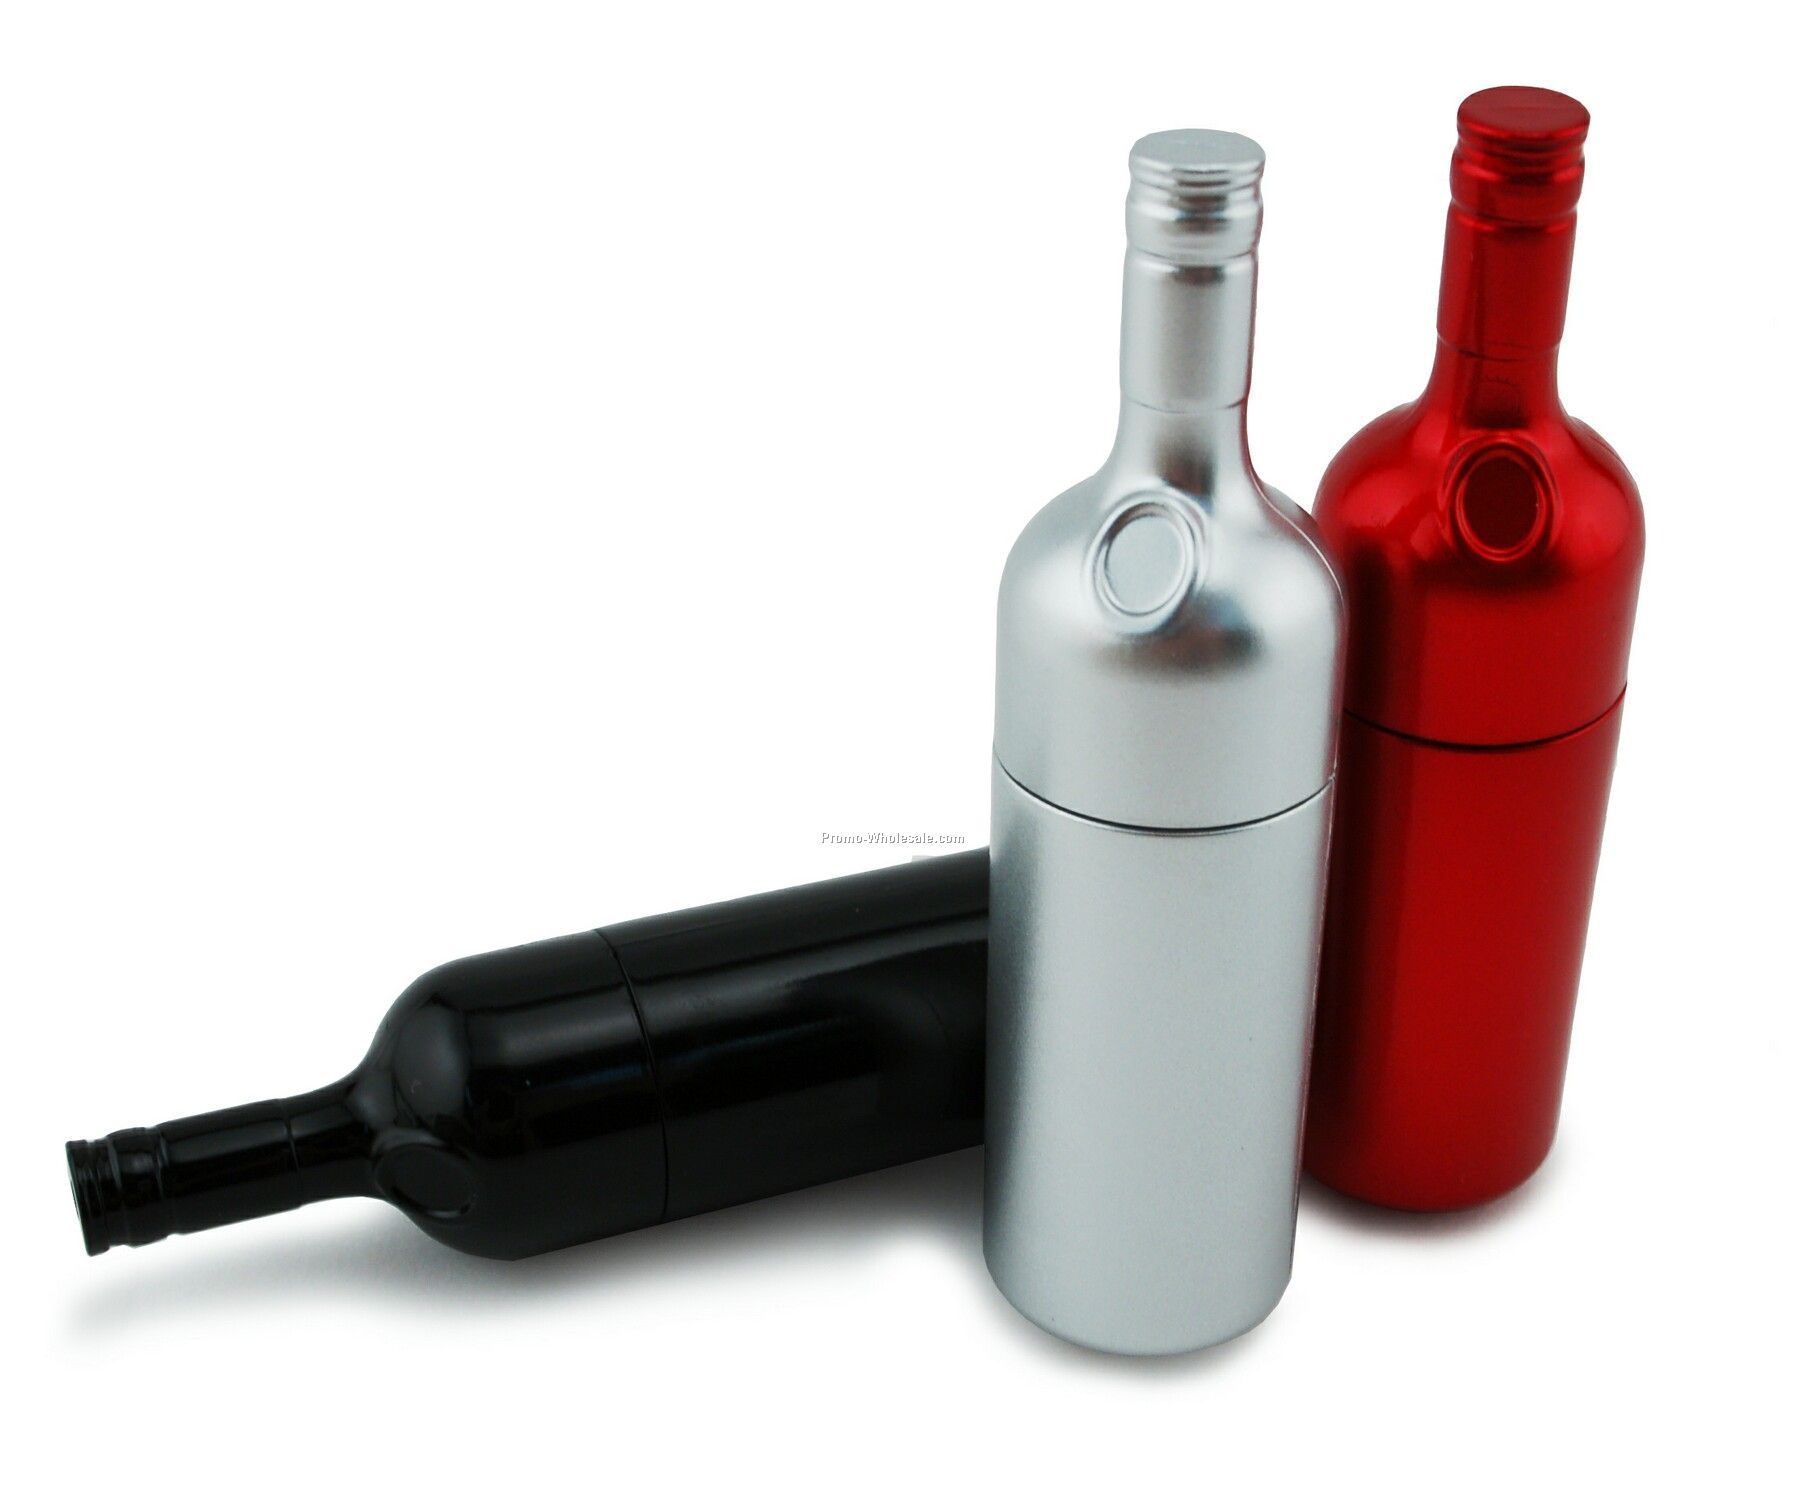 1 Gb Specialty - Wine Bottle